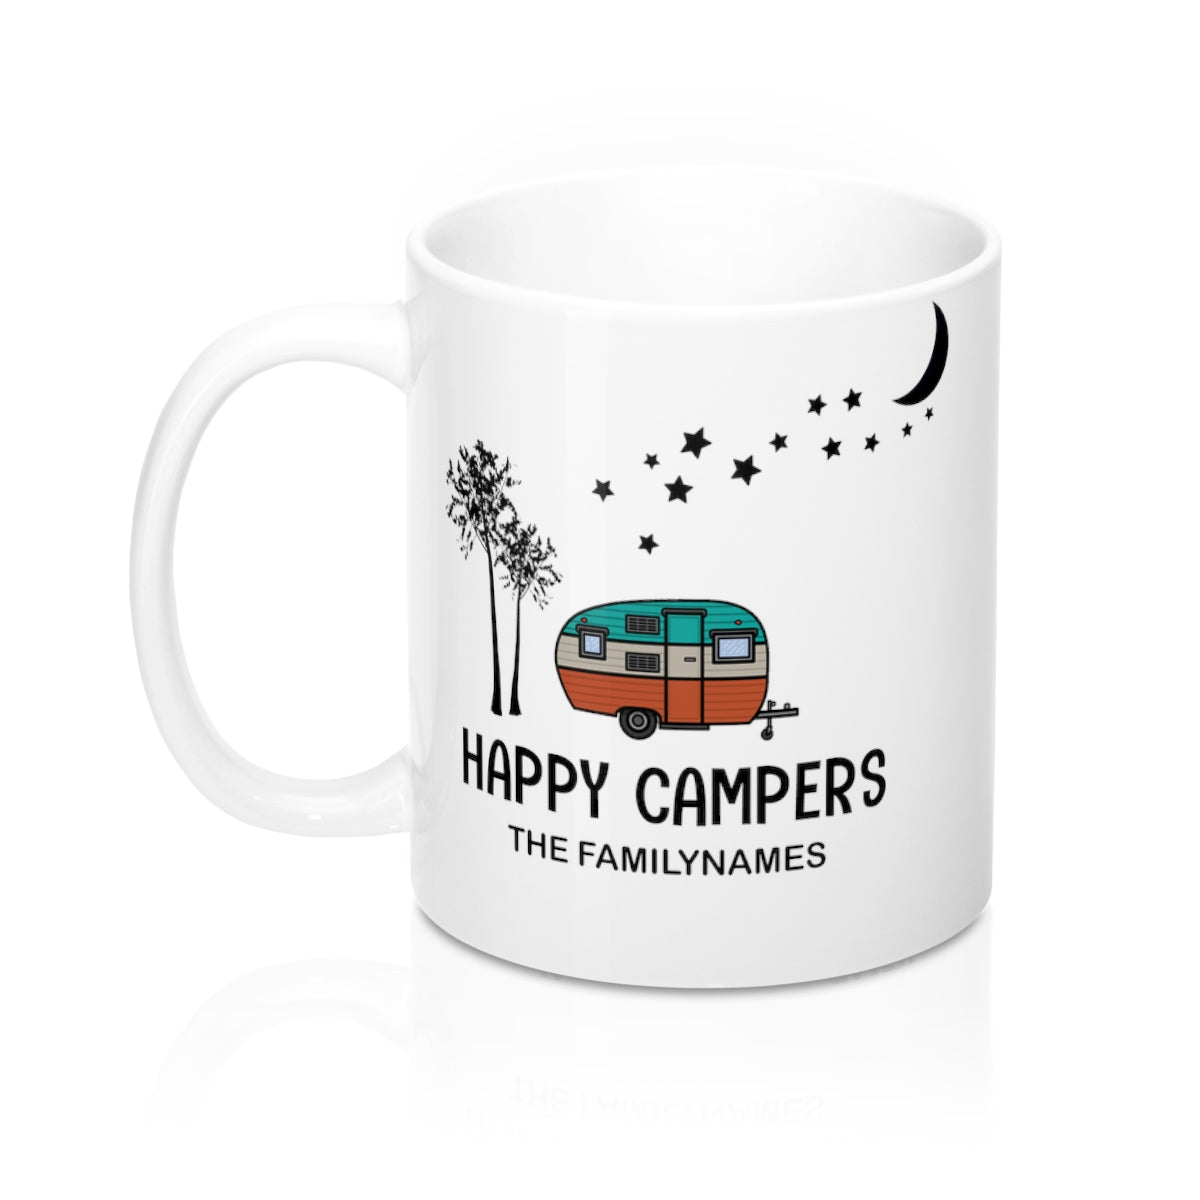 Happy Campers Family Mug with custom family name